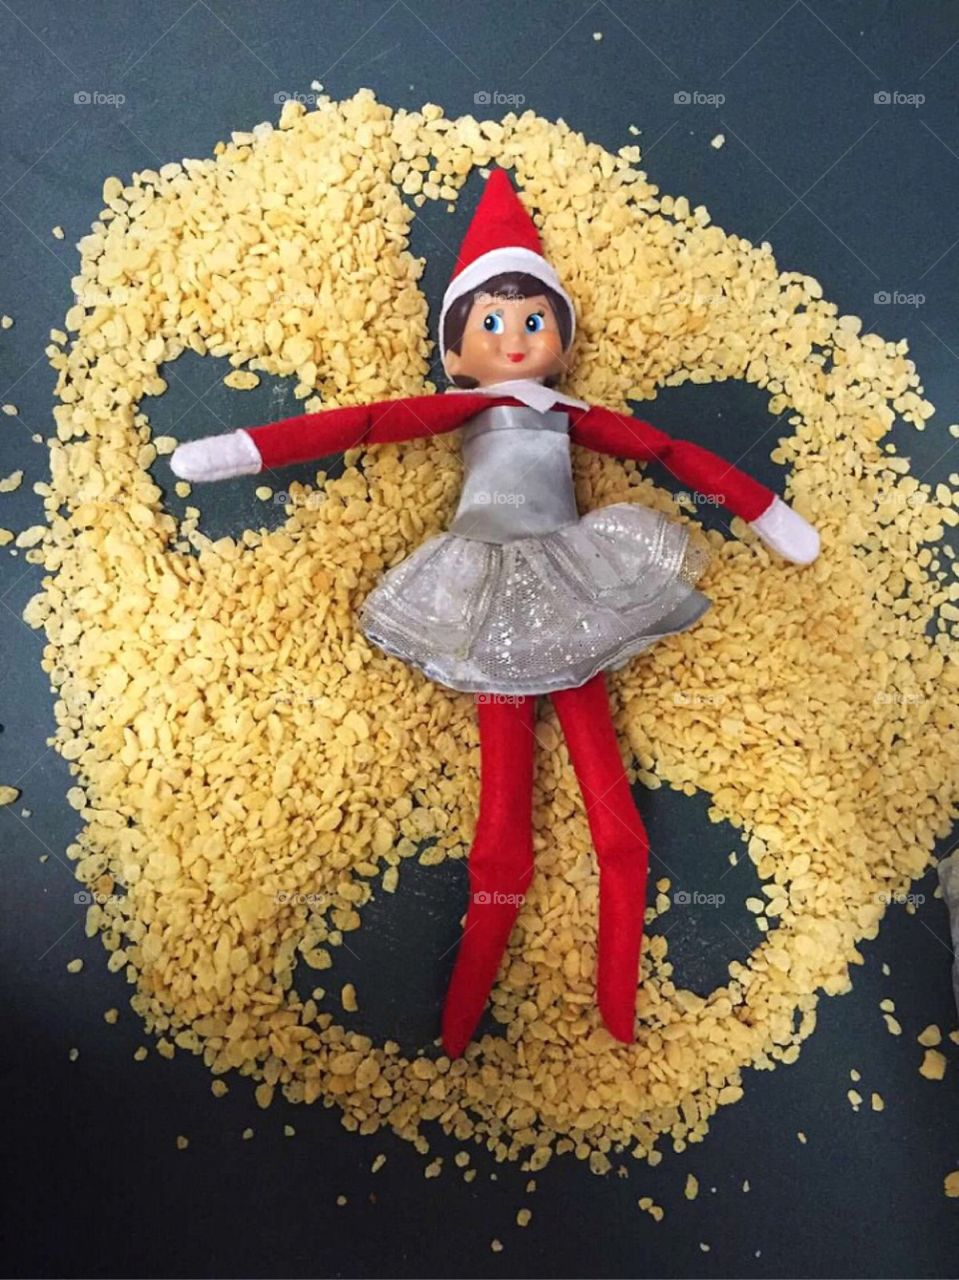 Our elf making a Rice Krispies Angel.